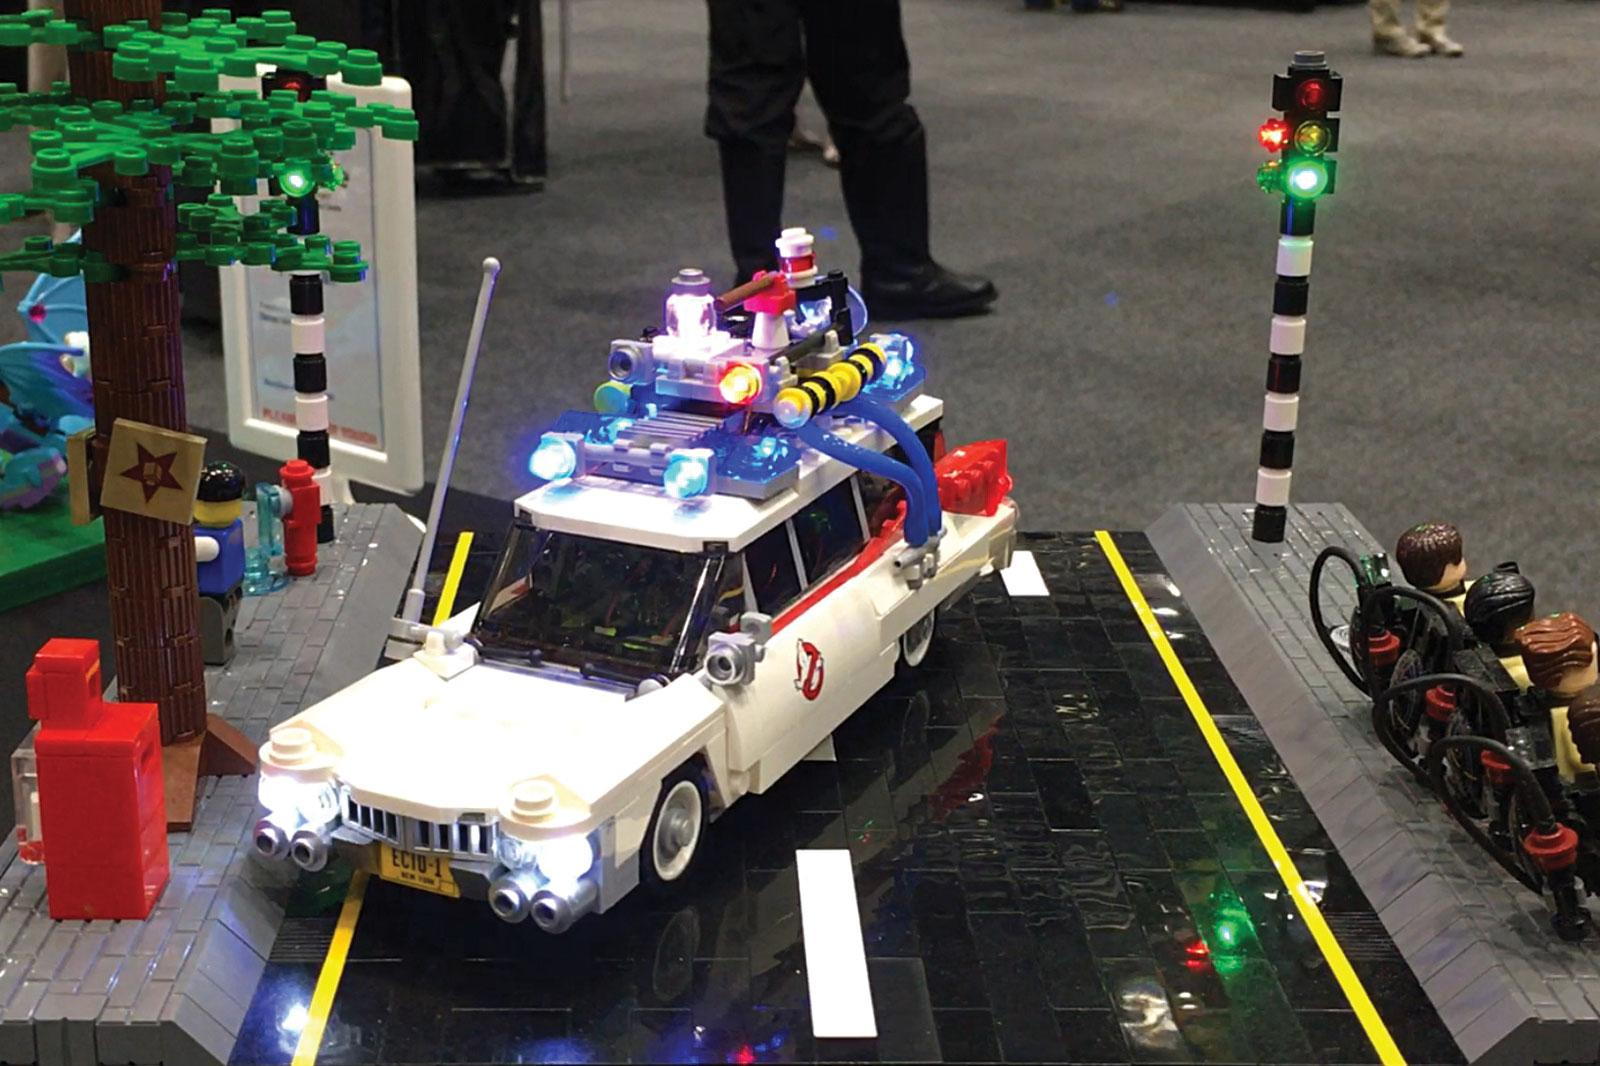 Dawid's Ecto at Brickalaide 2017. 3 x PIC12F675s driving 44 LEDs in the Ecto traffic light combined. Watch the video on facebook: @UCSInnovation.